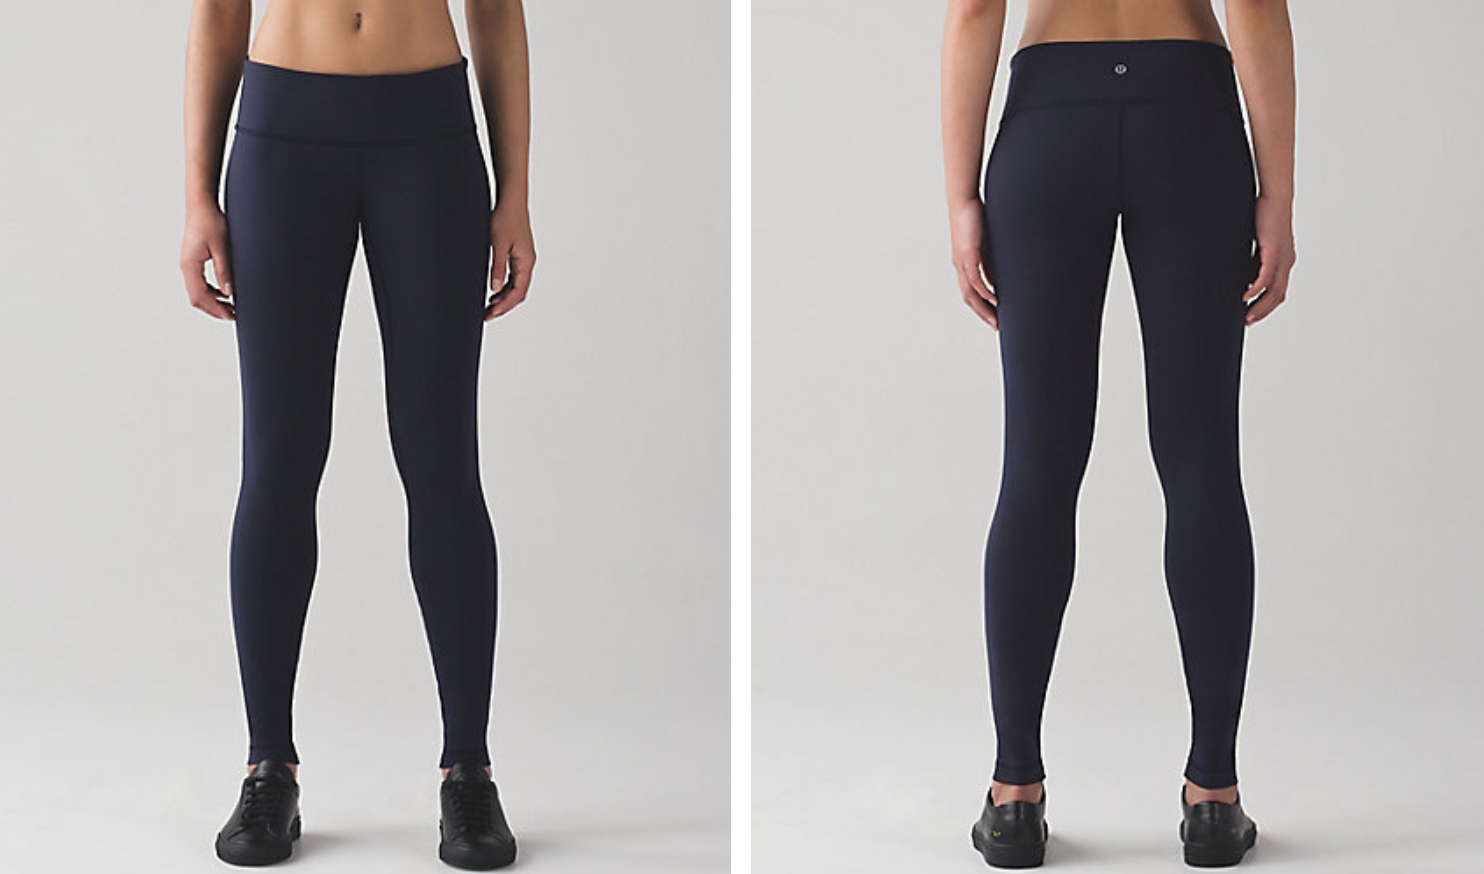 https://api.shopstyle.com/action/apiVisitRetailer?url=https%3A%2F%2Fshop.lululemon.com%2Fp%2Fwomen-pants%2FWunder-Under-Low-Rise-Tight-Fluon%2F_%2Fprod8470025%3Frcnt%3D6%26N%3D1z13ziiZ7vf%26cnt%3D64%26color%3DLW5APYS_028694&site=www.shopstyle.ca&pid=uid6784-25288972-7